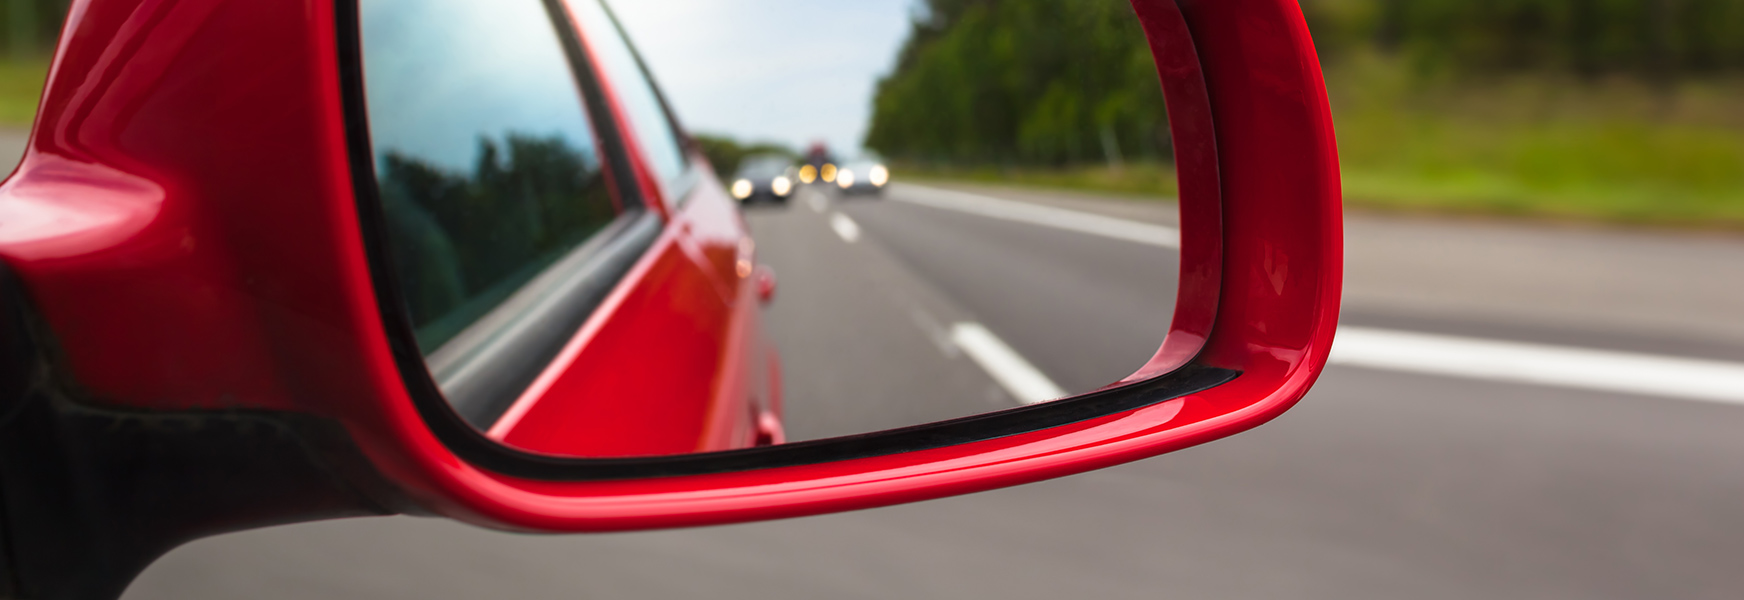 Automobile mirror adjustment to eliminate blind spots